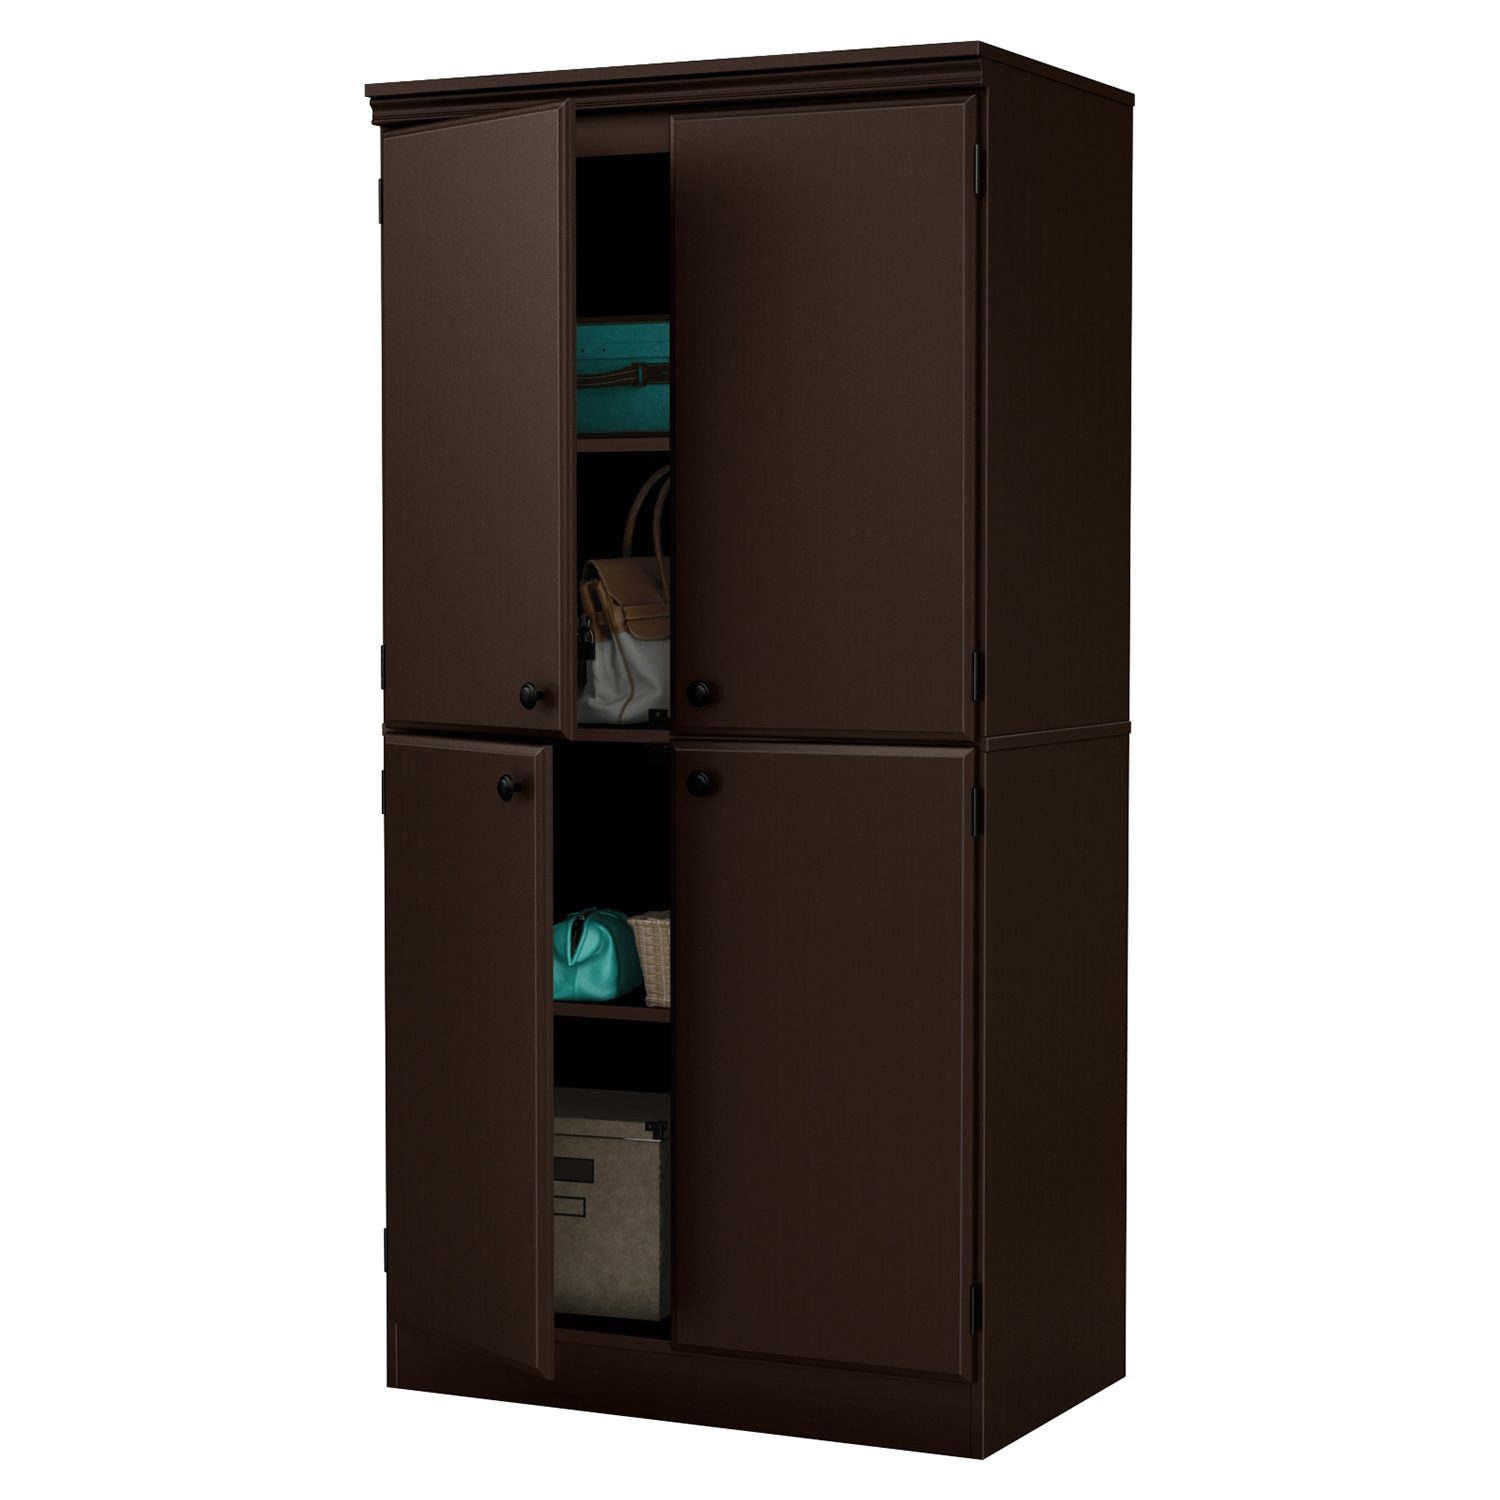 Morgan 4 Doors Storage Cabinet - Chocolate - SS-10073